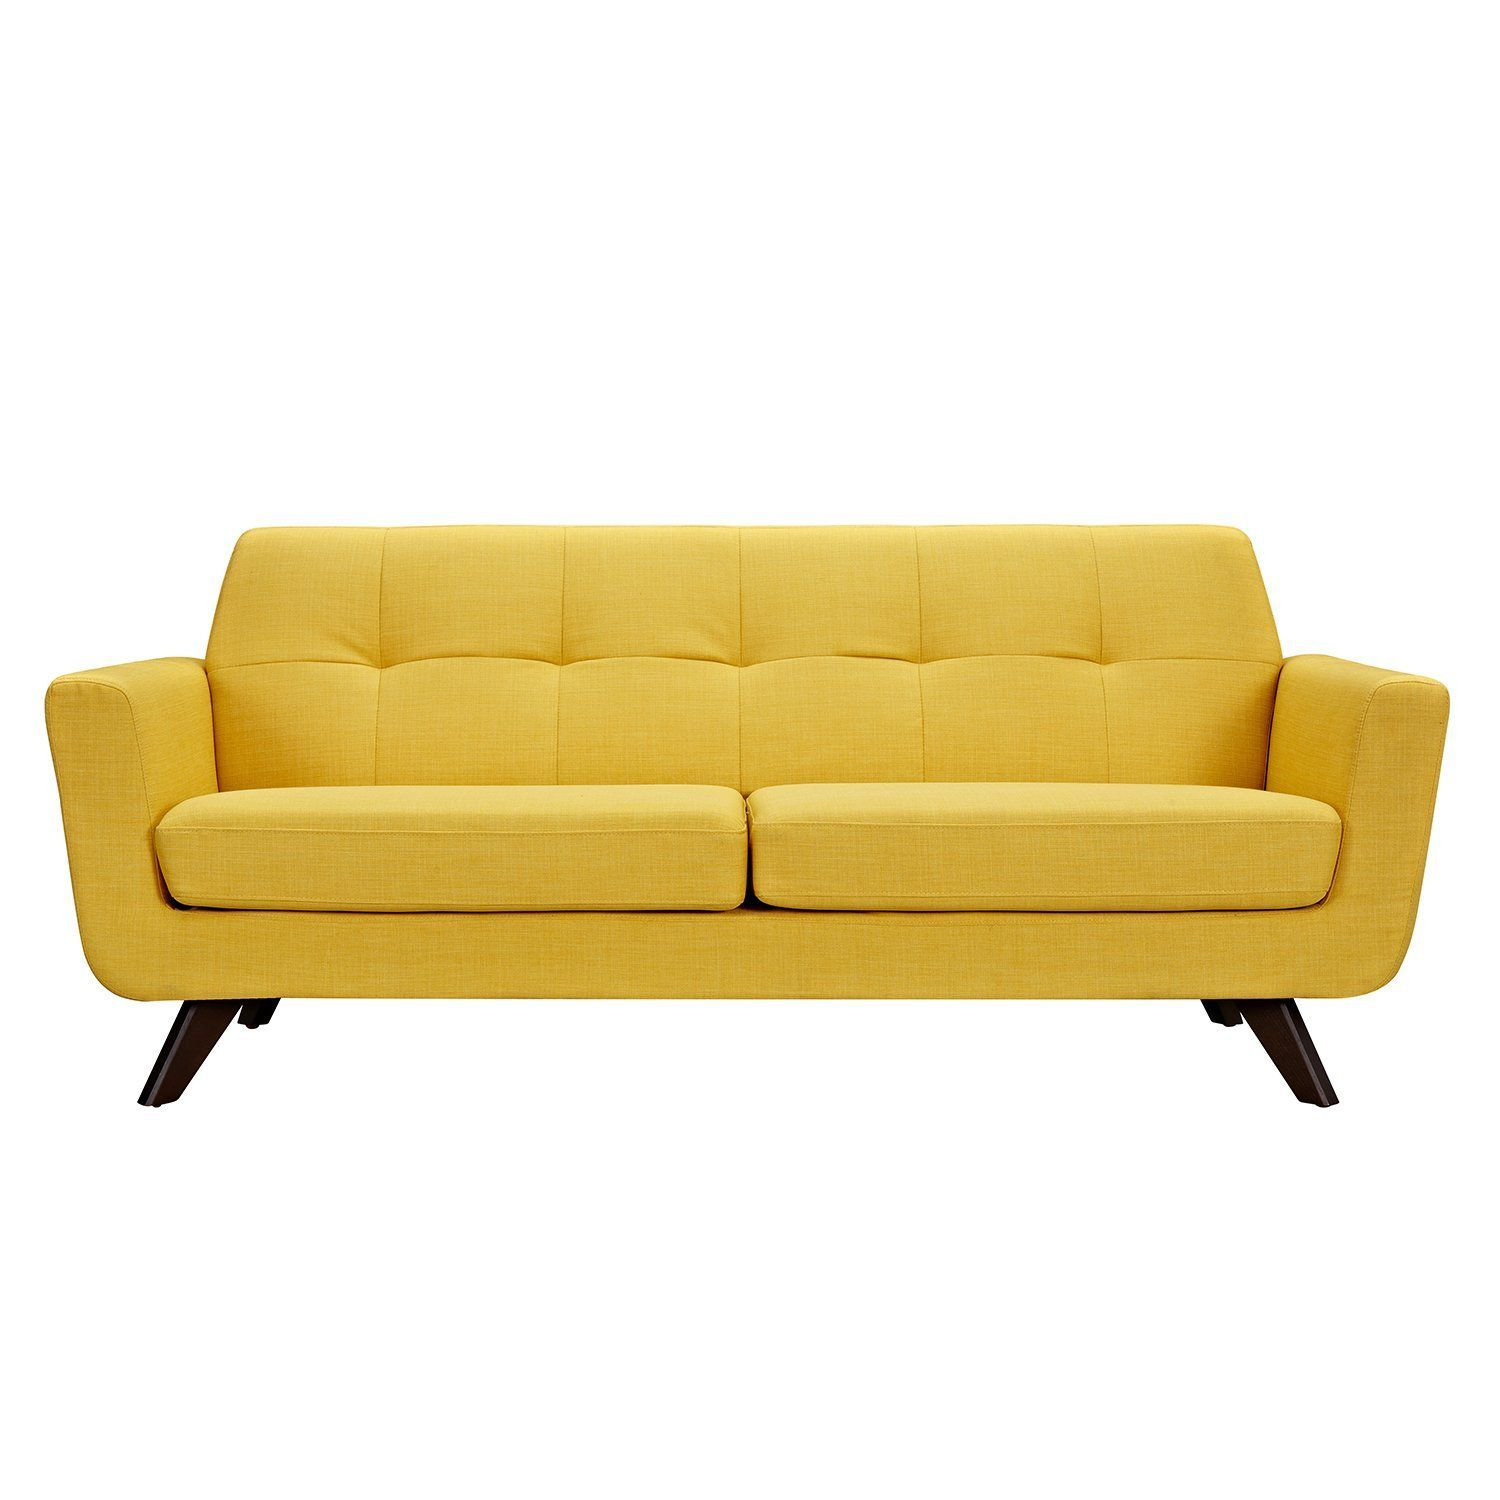 This Trendy And Yet Comfortable Sofa Is A Wonderful Choice For Either Your Living Room Or